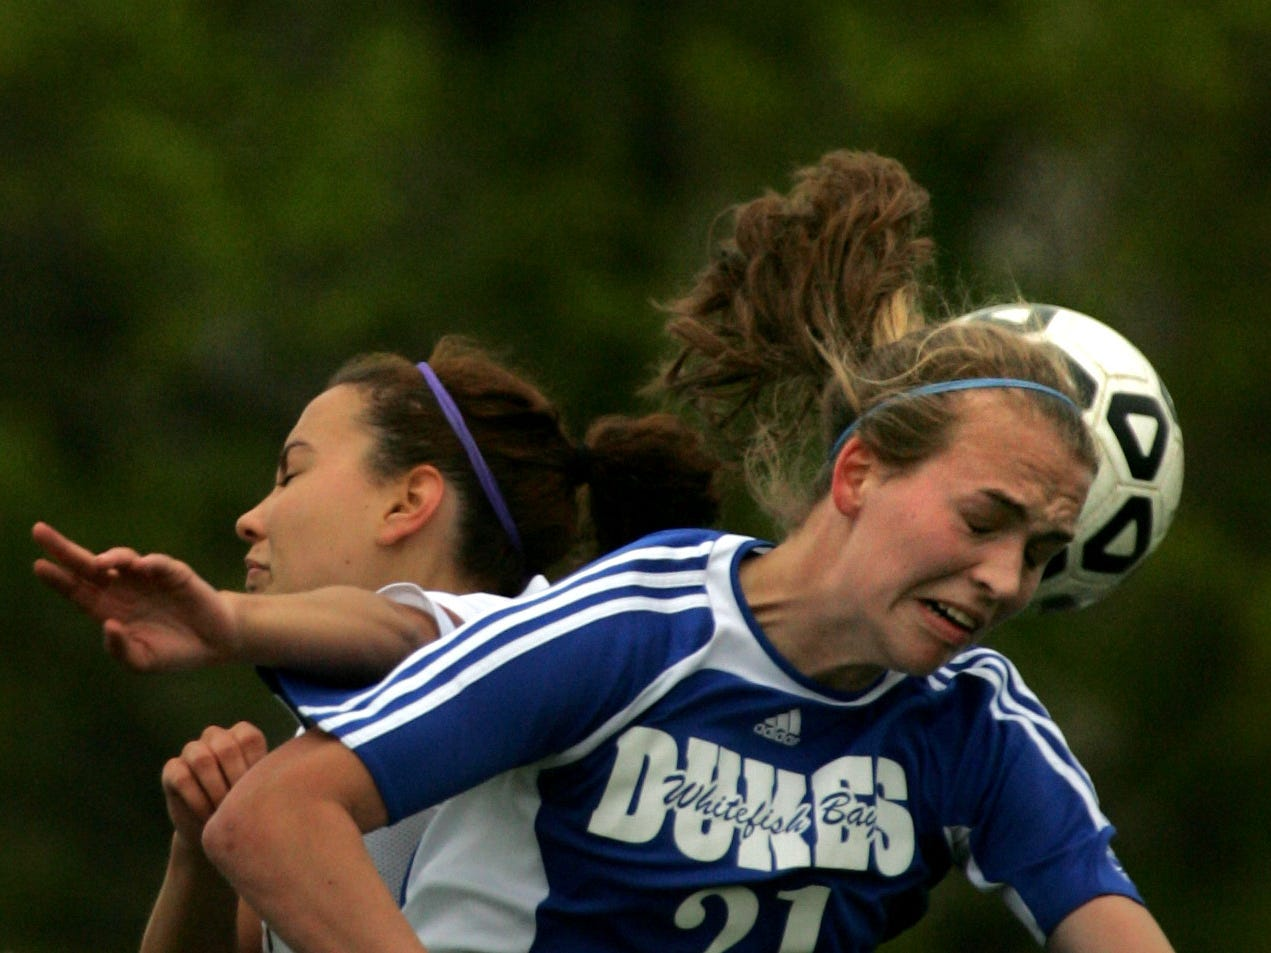 Shorewood's Chelsea Crawford, rear, collides with Whitefish Bay's Abby Starker (21) as the two leap for the header during a game May 9, 2009, at Shorewood High School.